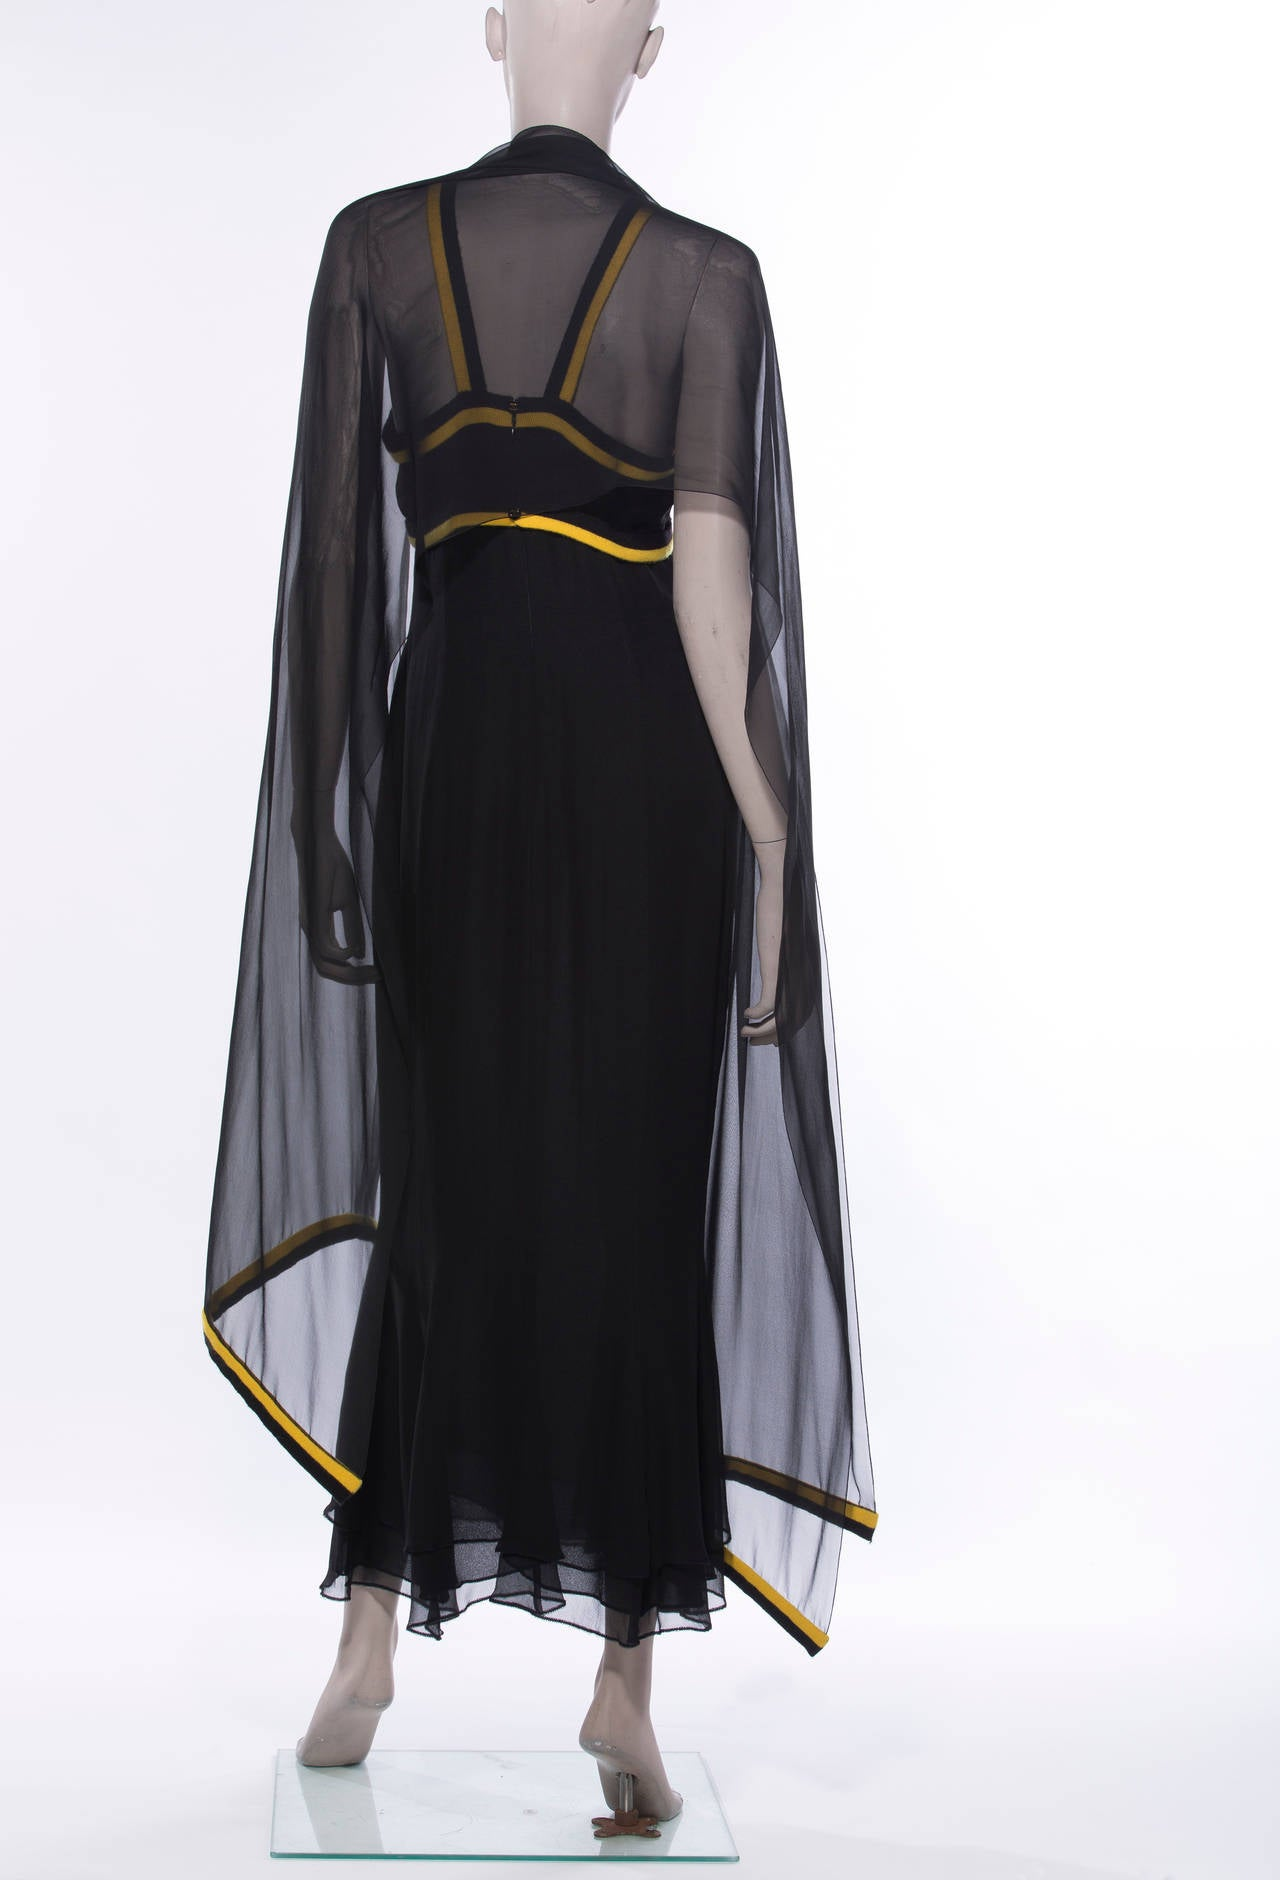 Chanel Black Sleeveless Silk Chiffon Dress With Yellow Cashmere Trim, Fall 1994 For Sale 1